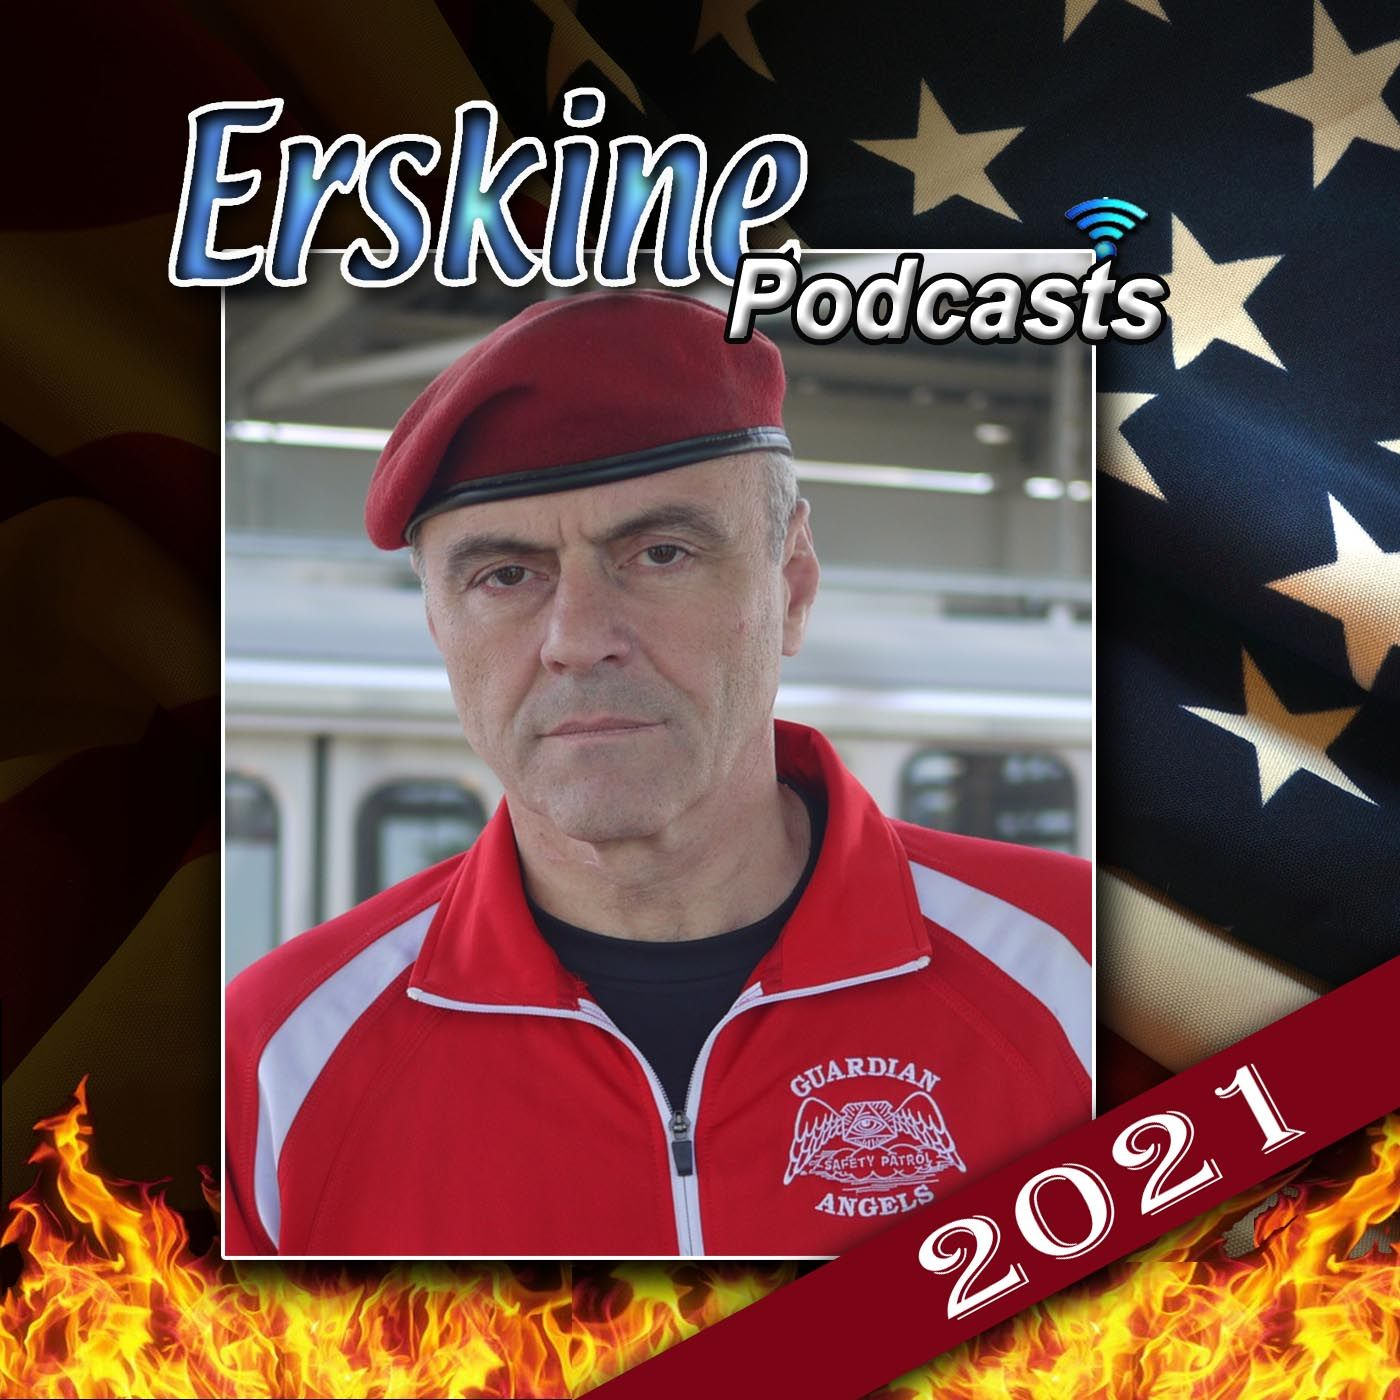 Curtis Sliwa brings his fight for NYC & police to his NYC mayoral campaign (ep#5-1-21)